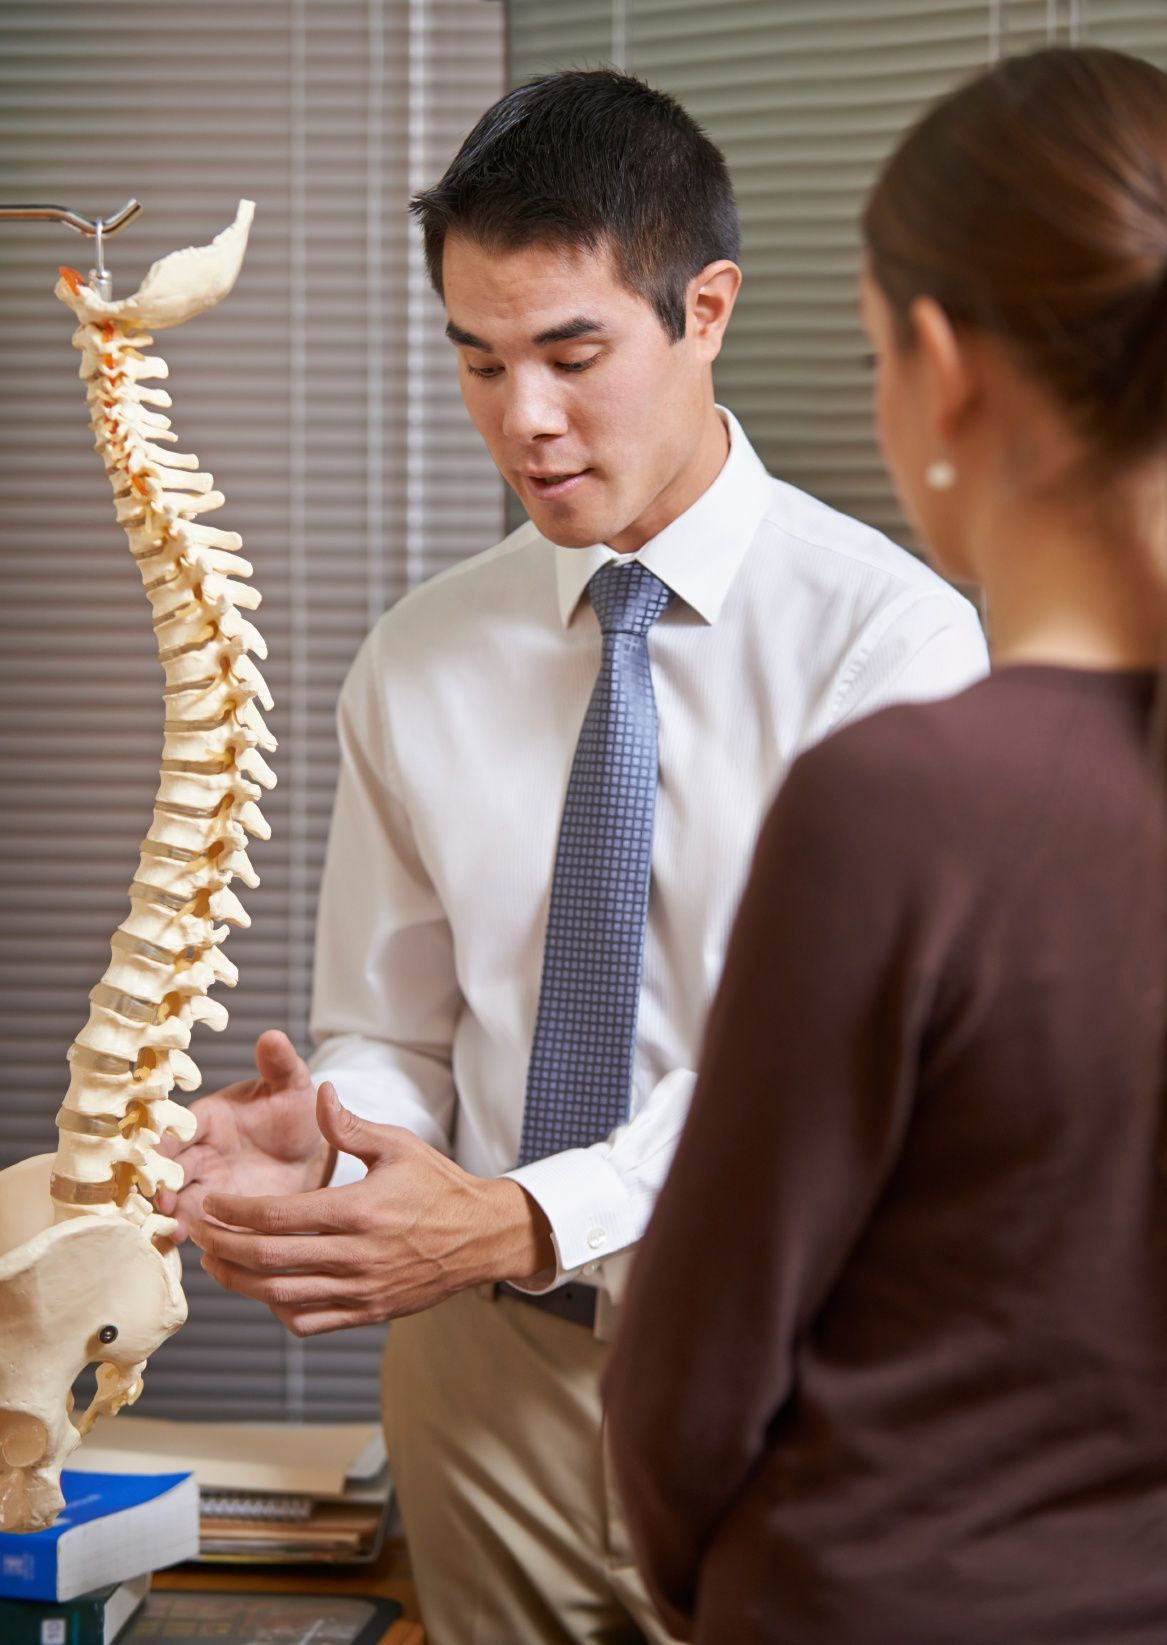 Learning about Chiropractic Care